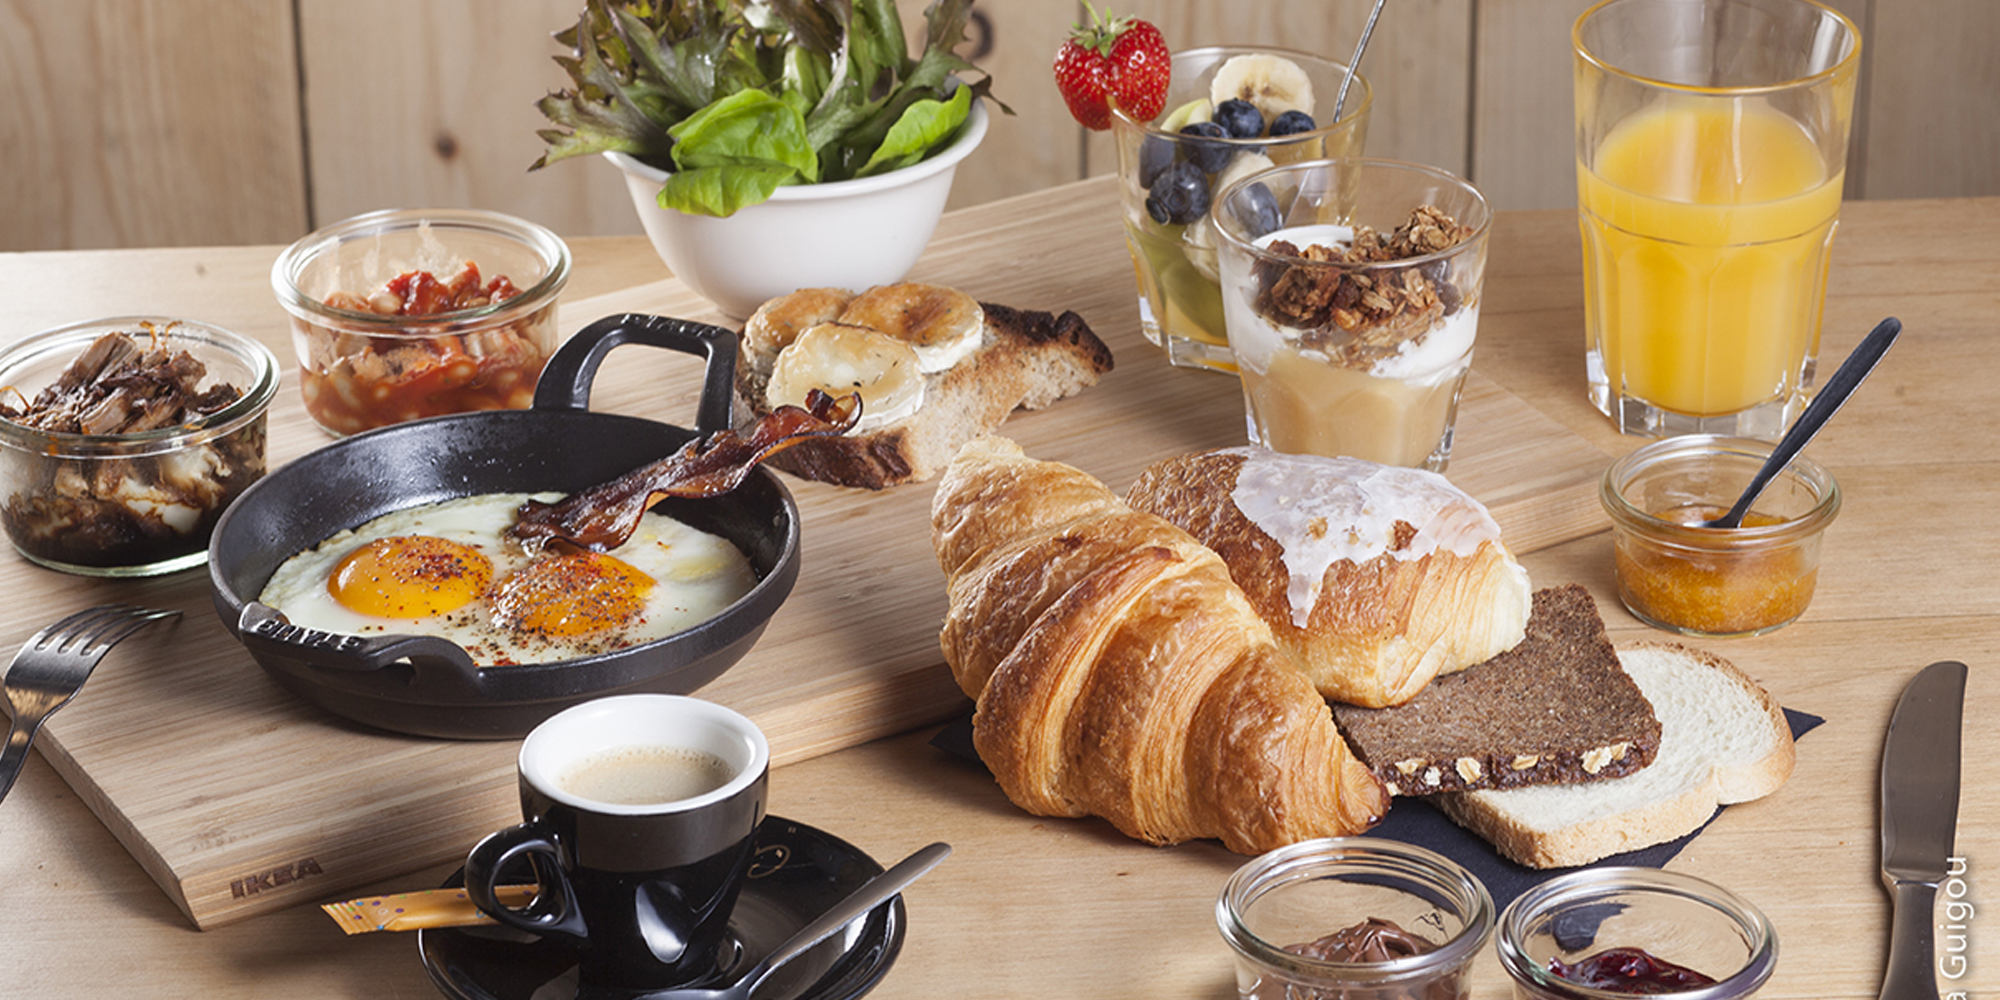 Brunch Graffalgar (67000 Strasbourg)